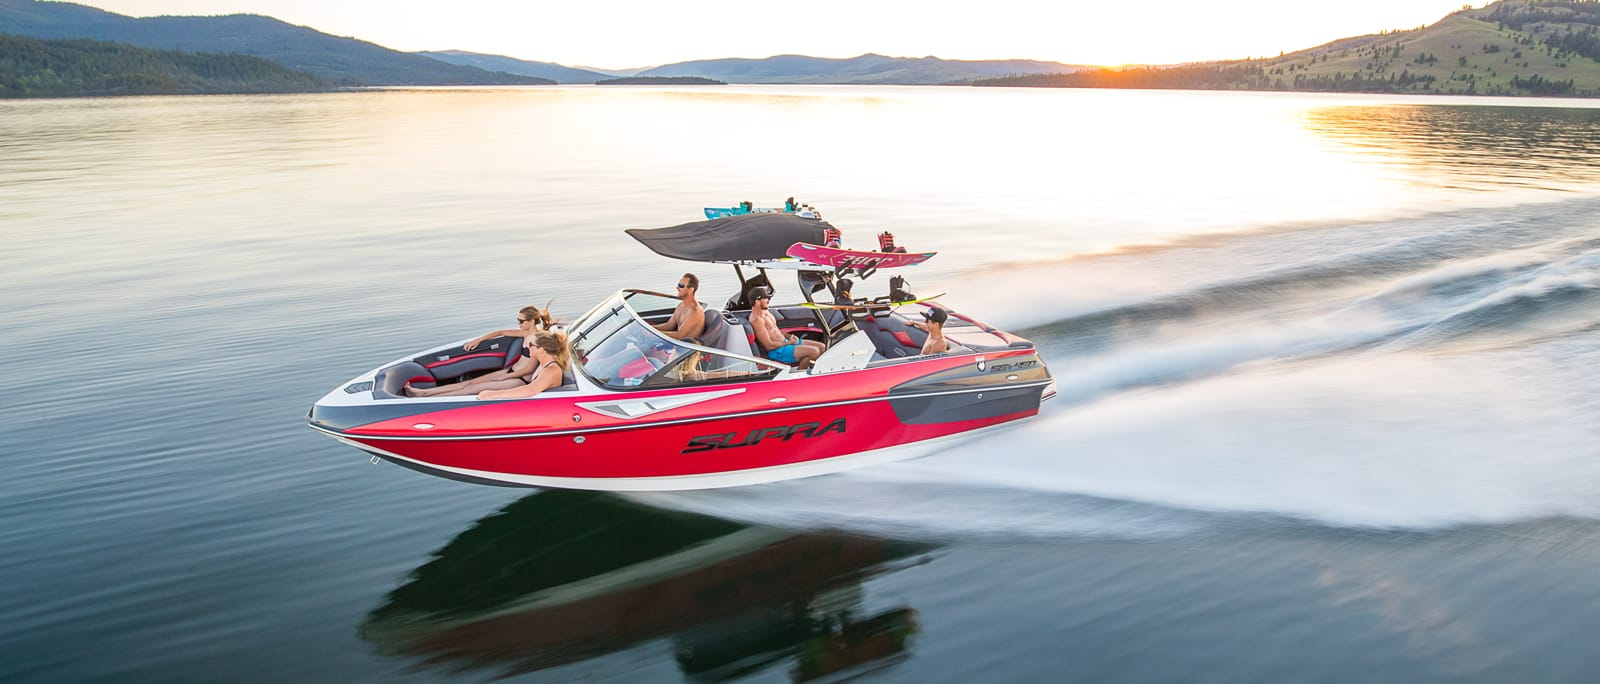 A group of people on a Supra wakeboard boat on the water